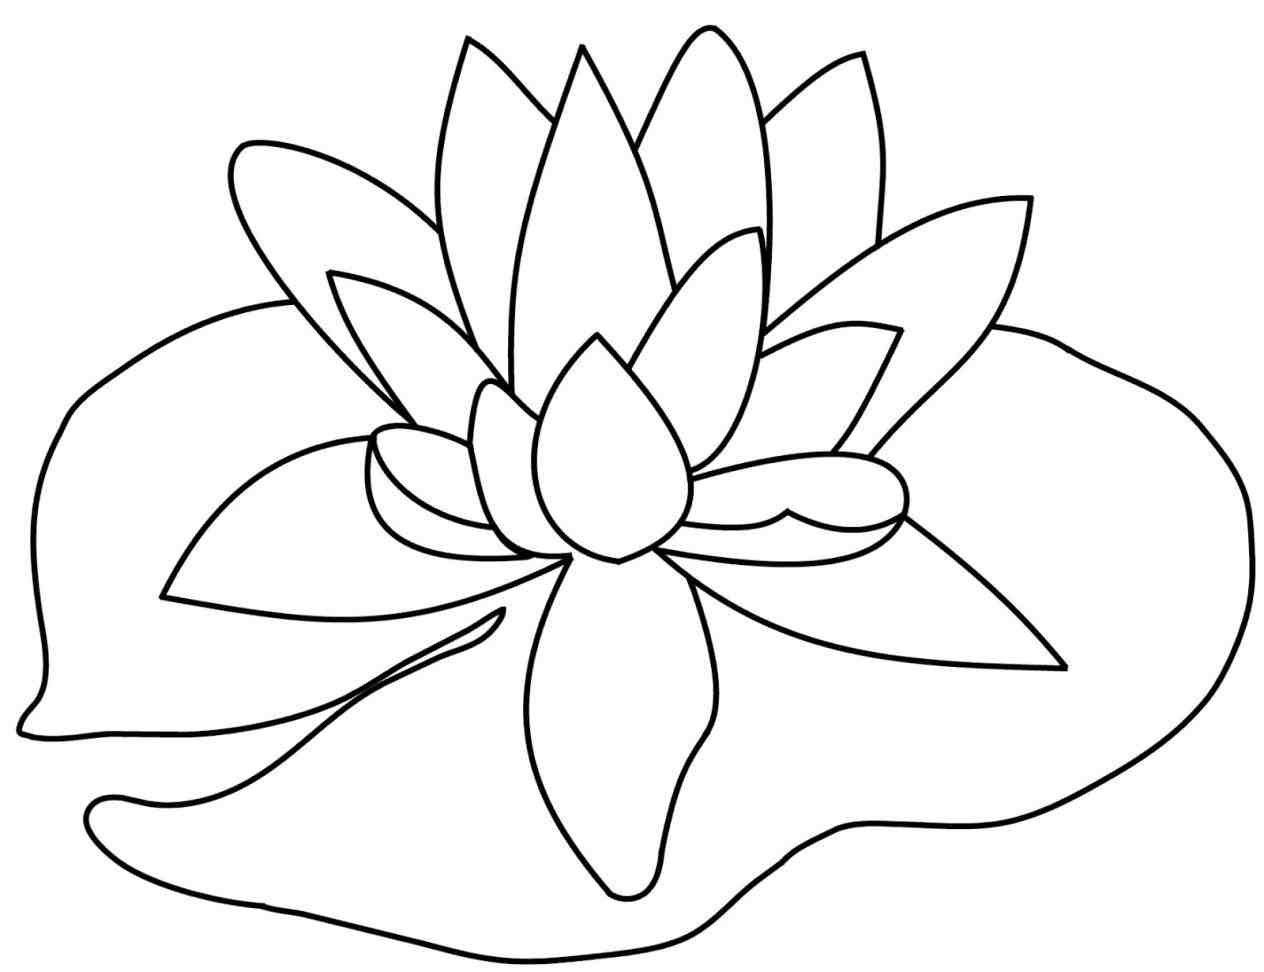 1264x972 How To Draw A Lily Step By Step For Kids